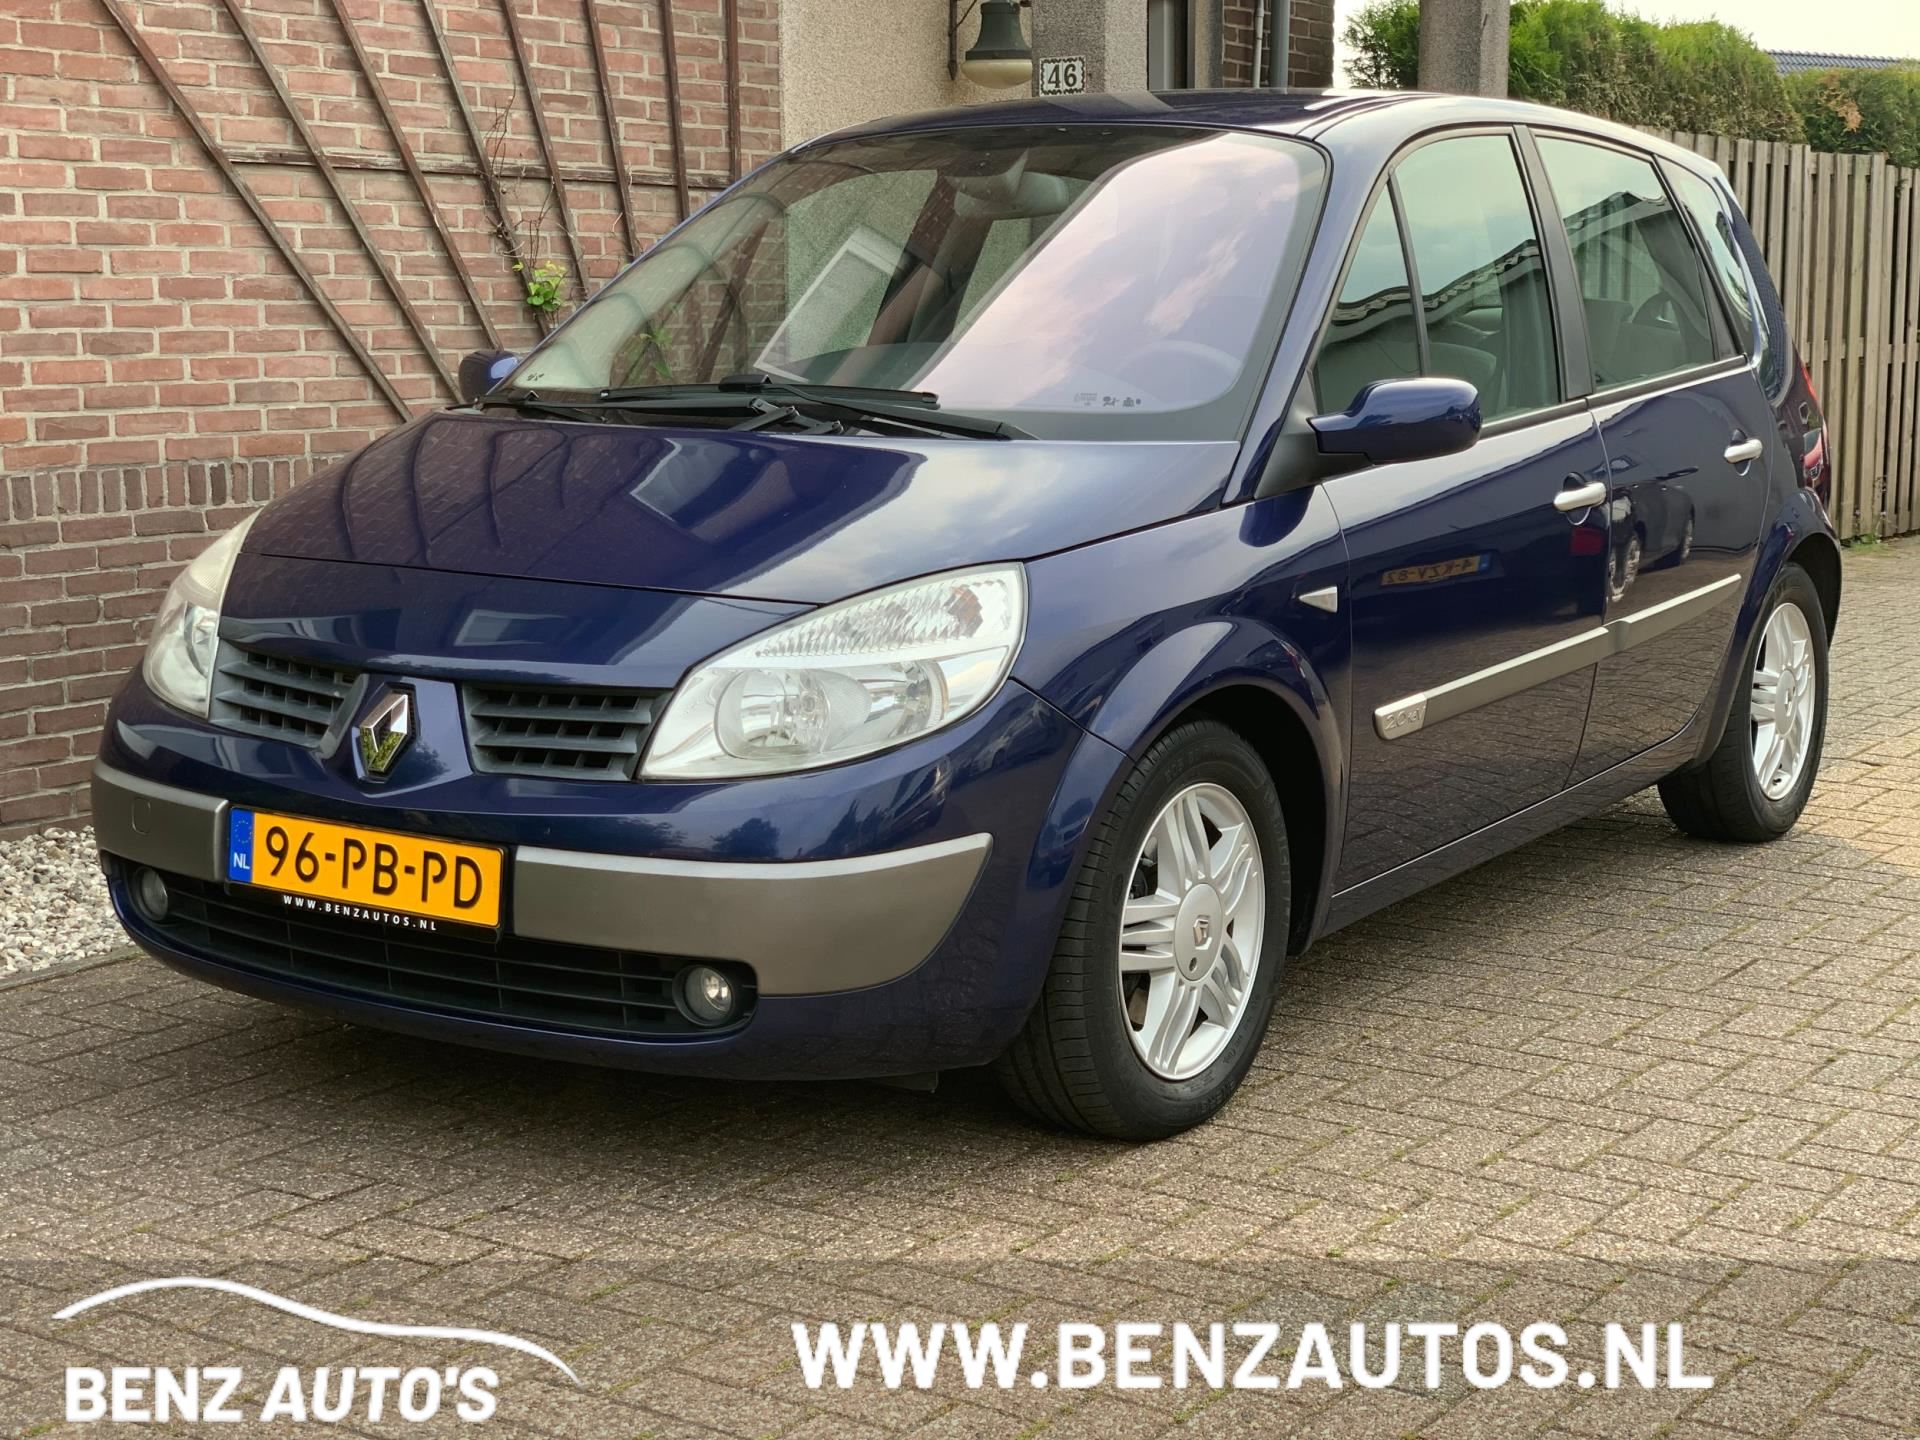 Renault Scénic occasion - BENZ Auto's